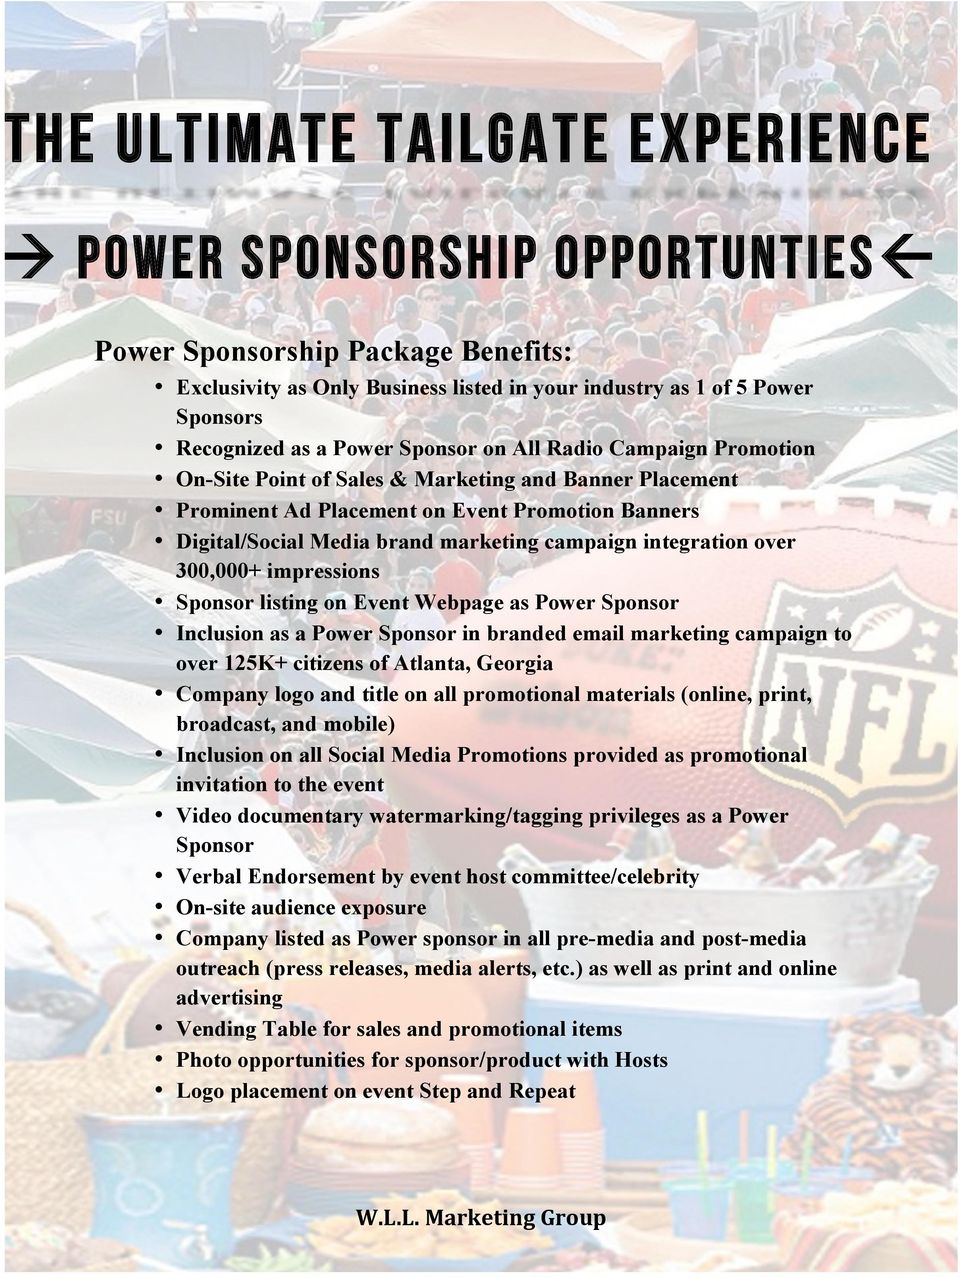 Sponsor listing on Event Webpage as Power Sponsor Inclusion as a Power Sponsor in branded email marketing campaign to over 125K+ citizens of Atlanta, Georgia Company logo and title on all promotional